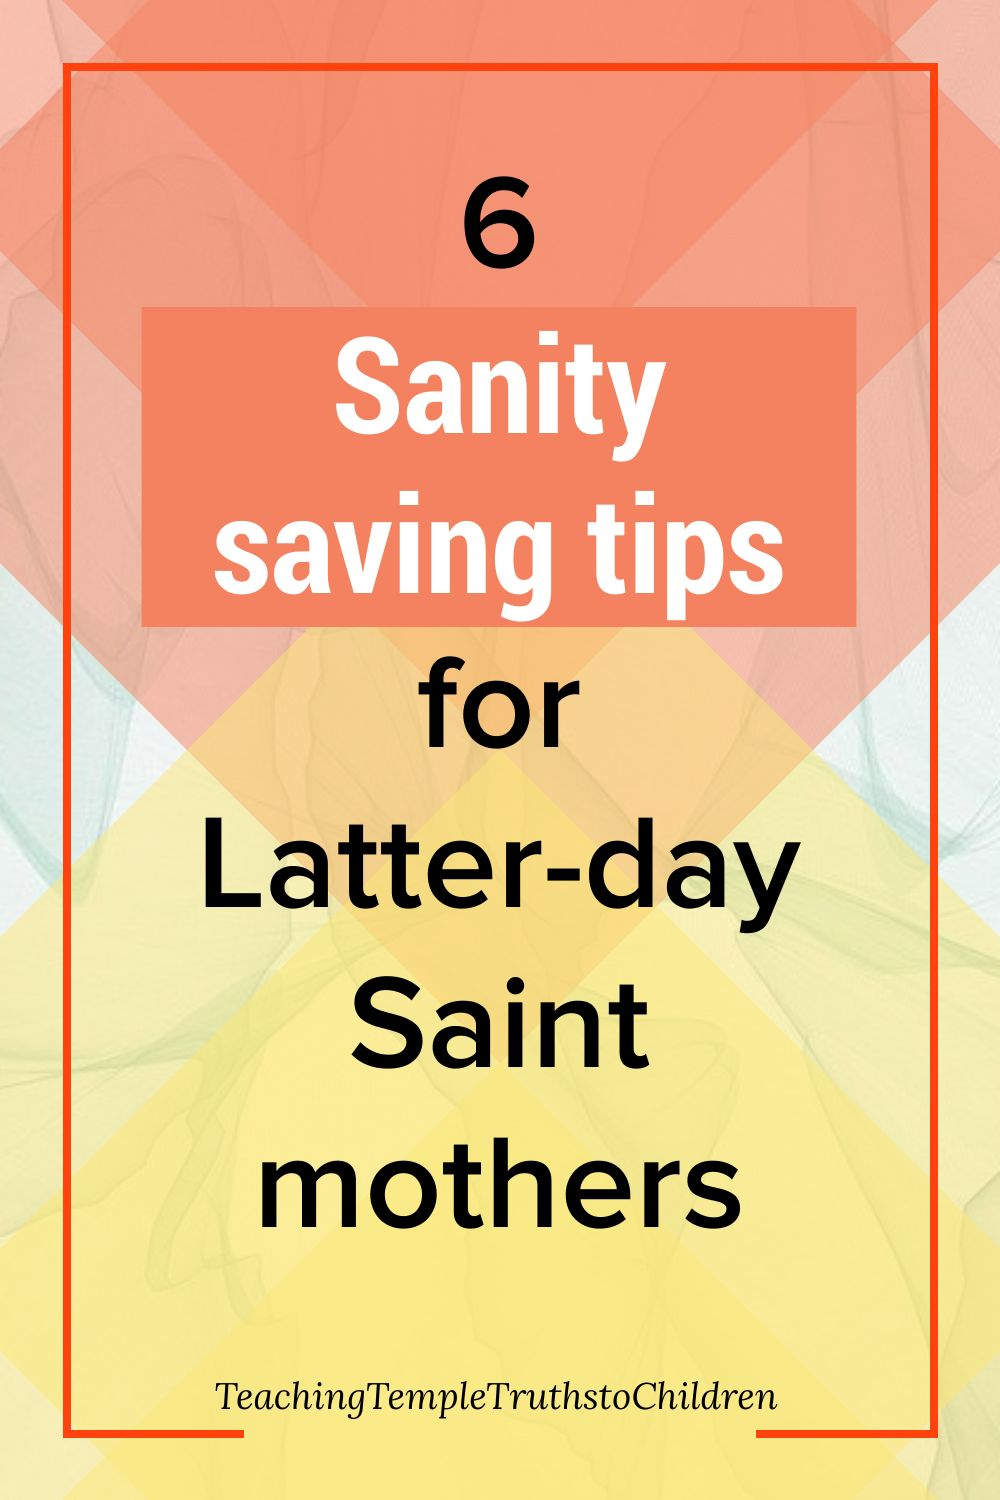 6 sanity saving tips for Latter-day Saint mothers